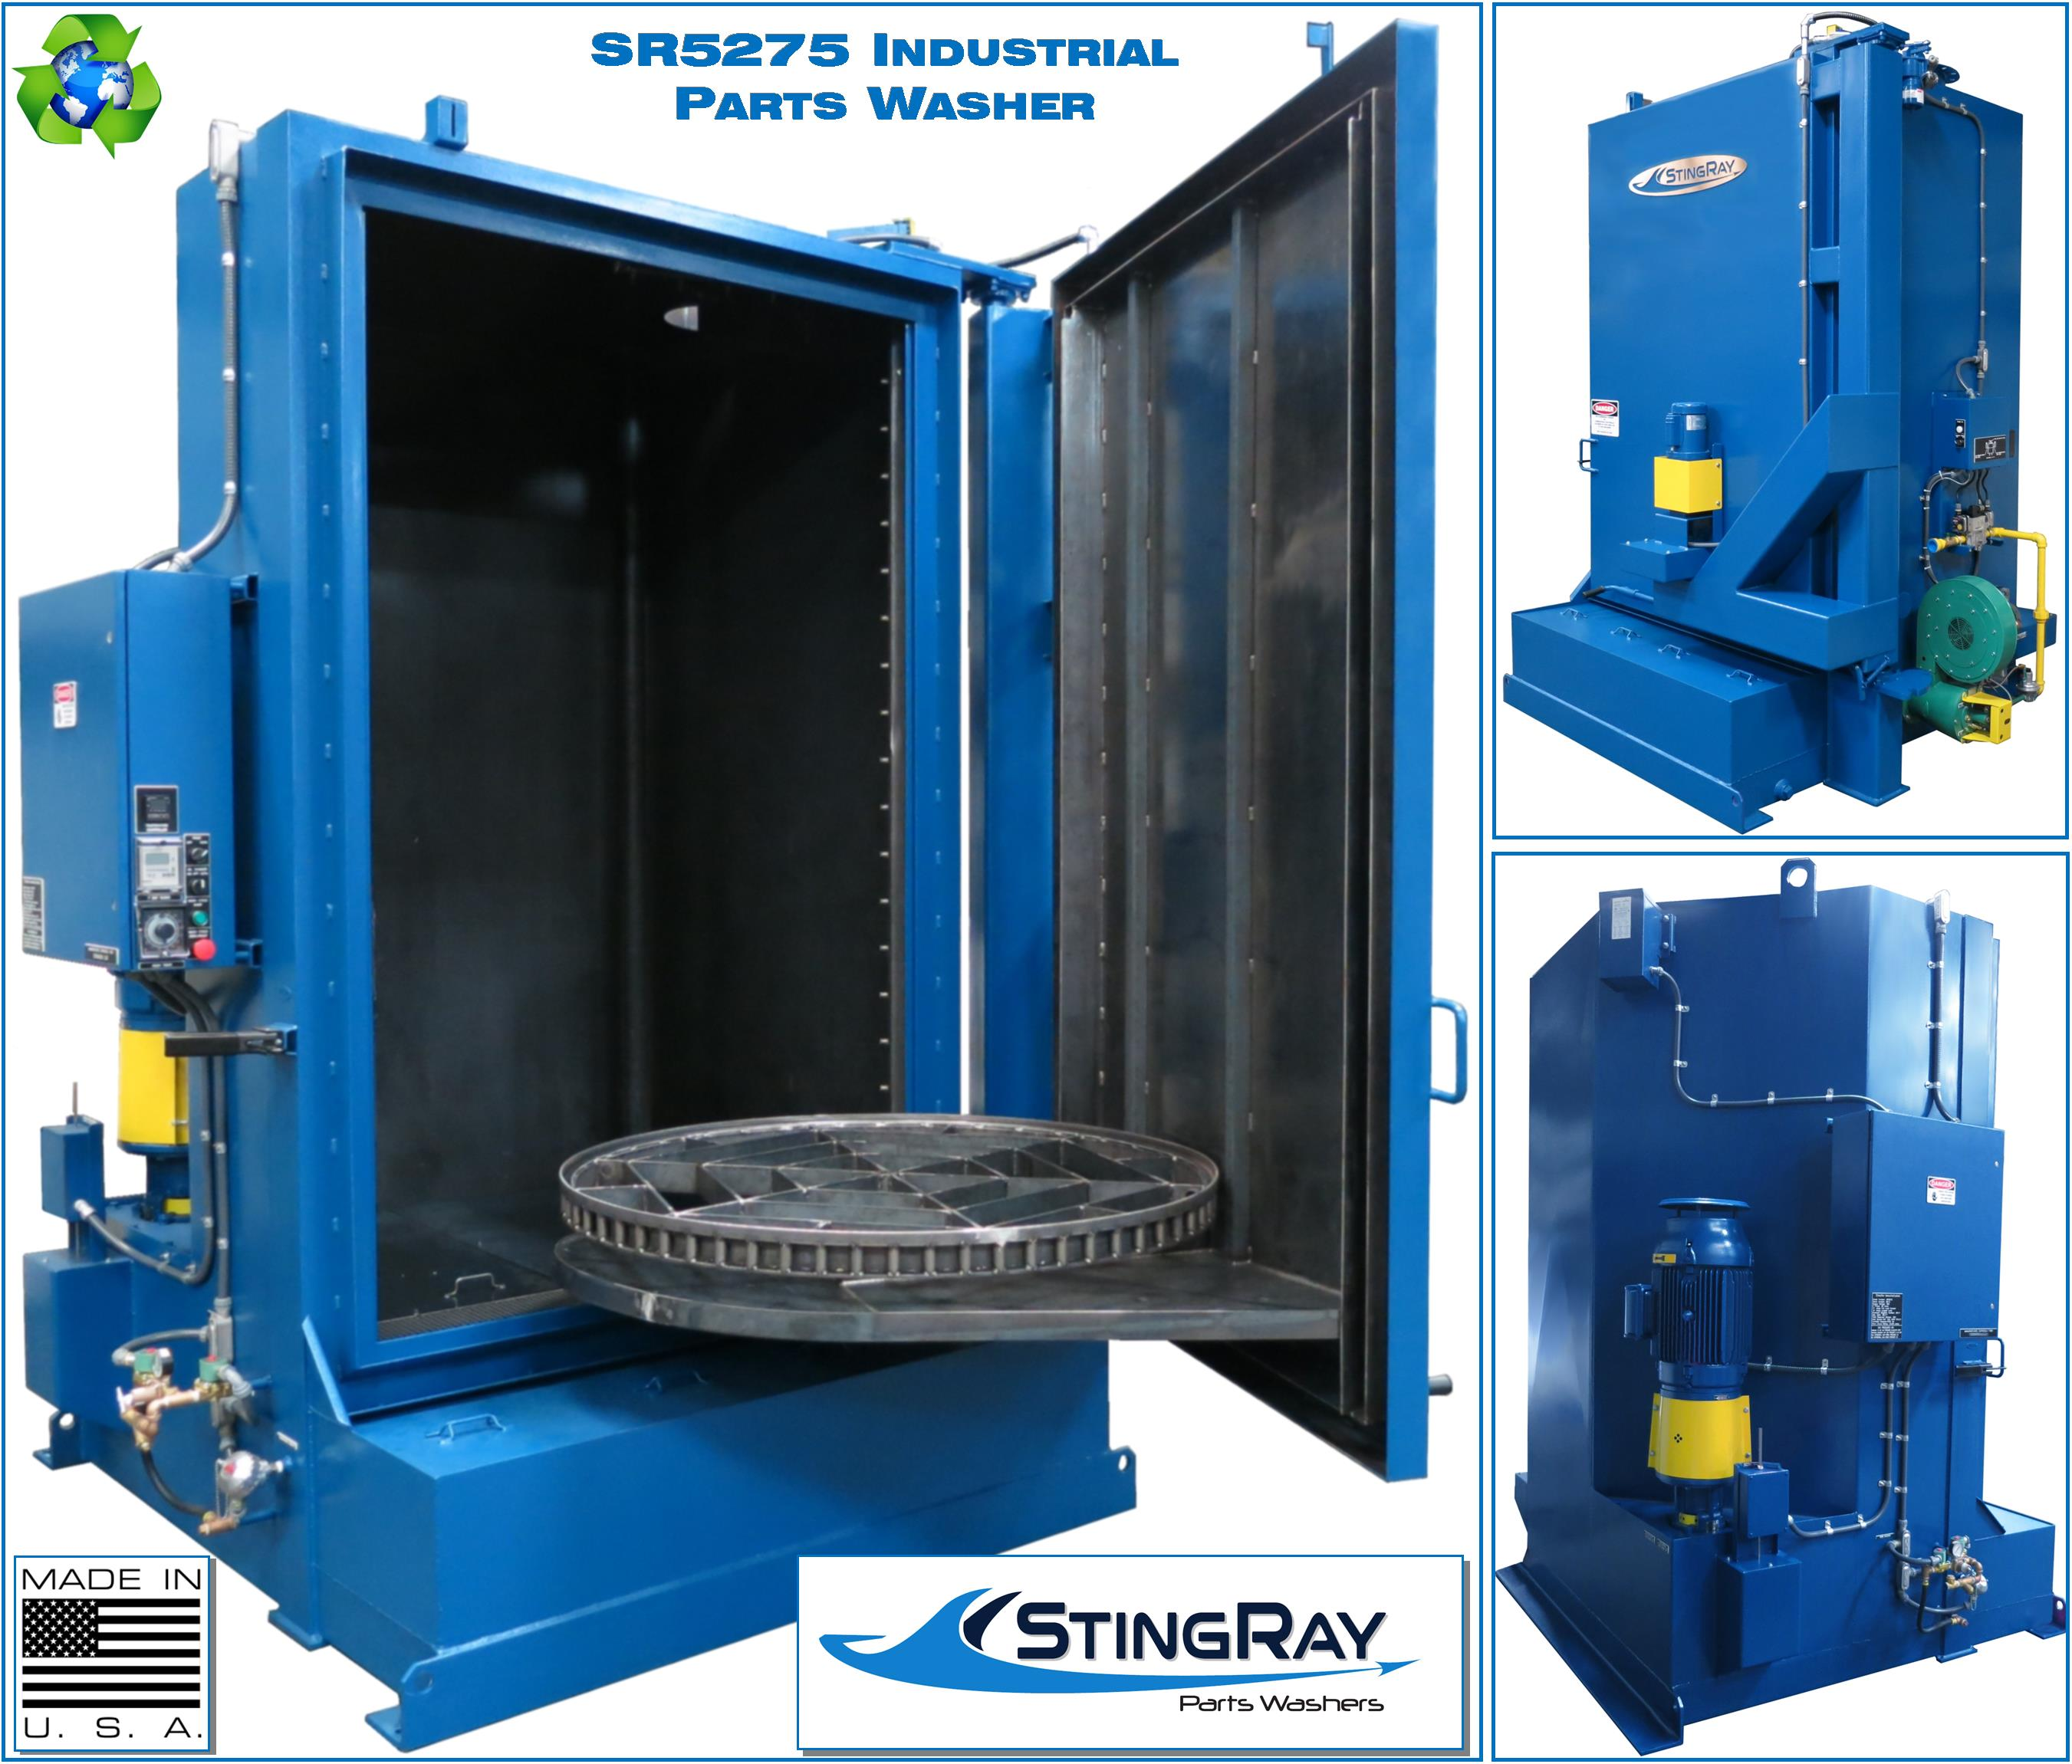 Heavy-Duty-Industrial-Parts-Washer-by-StingRay-SR5275